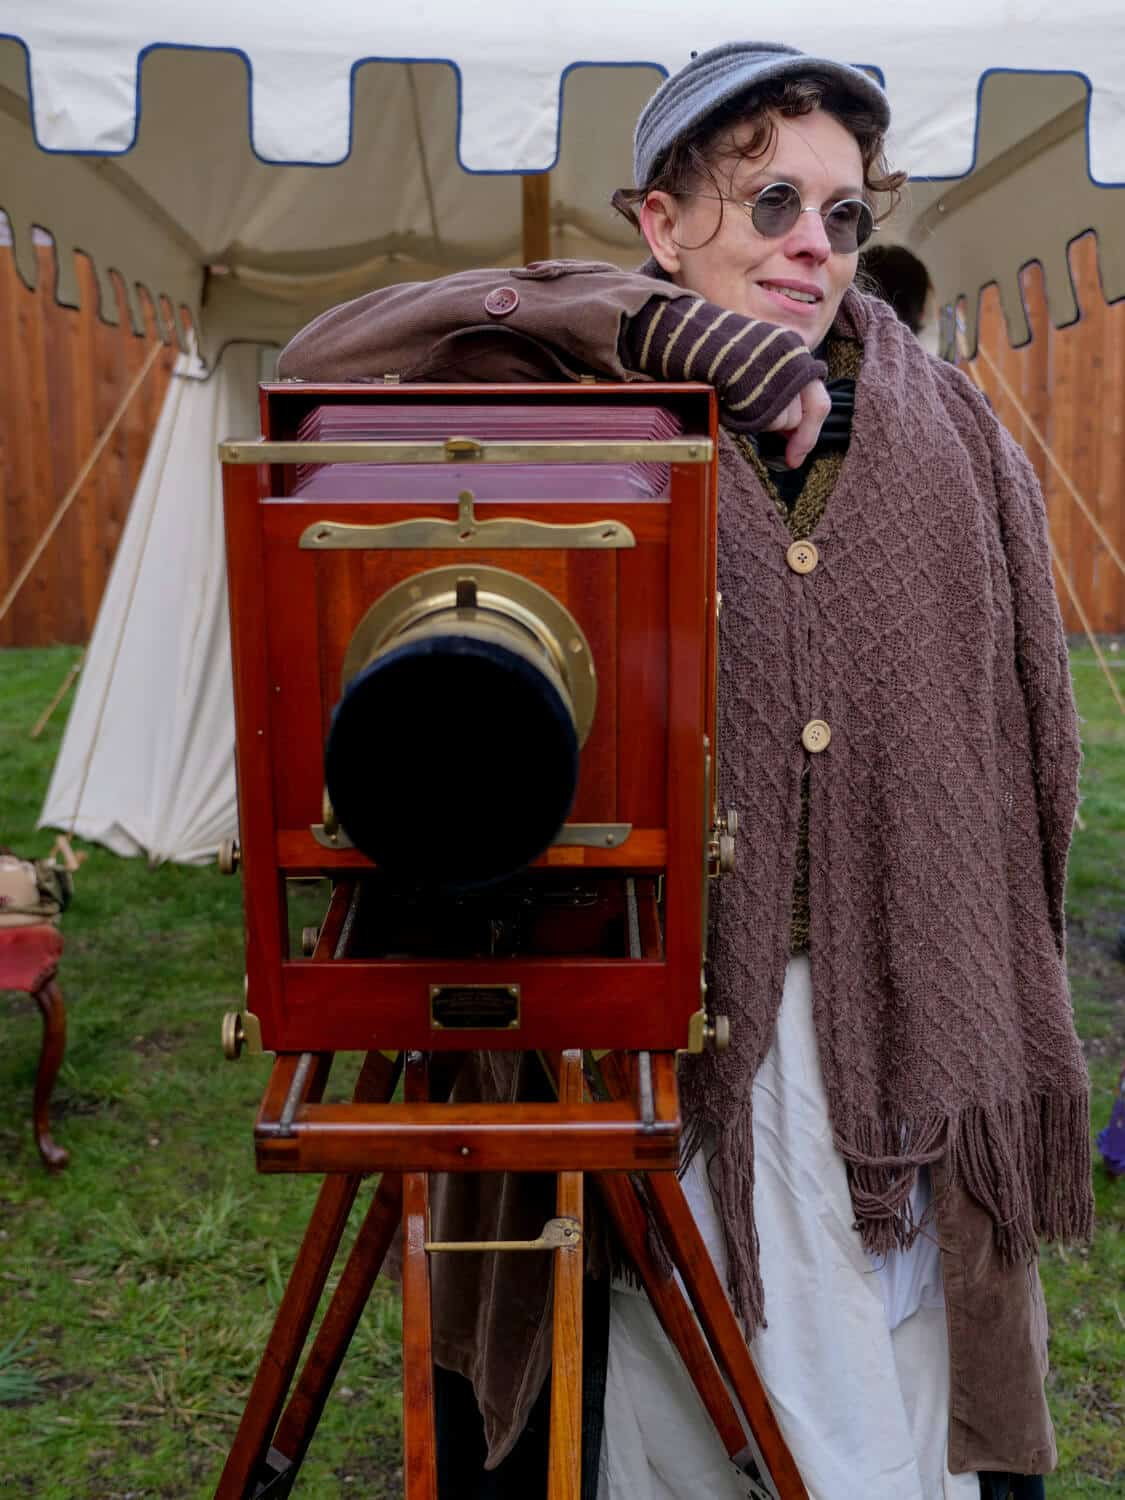 historic camera at the Port Townsend Victorian festival